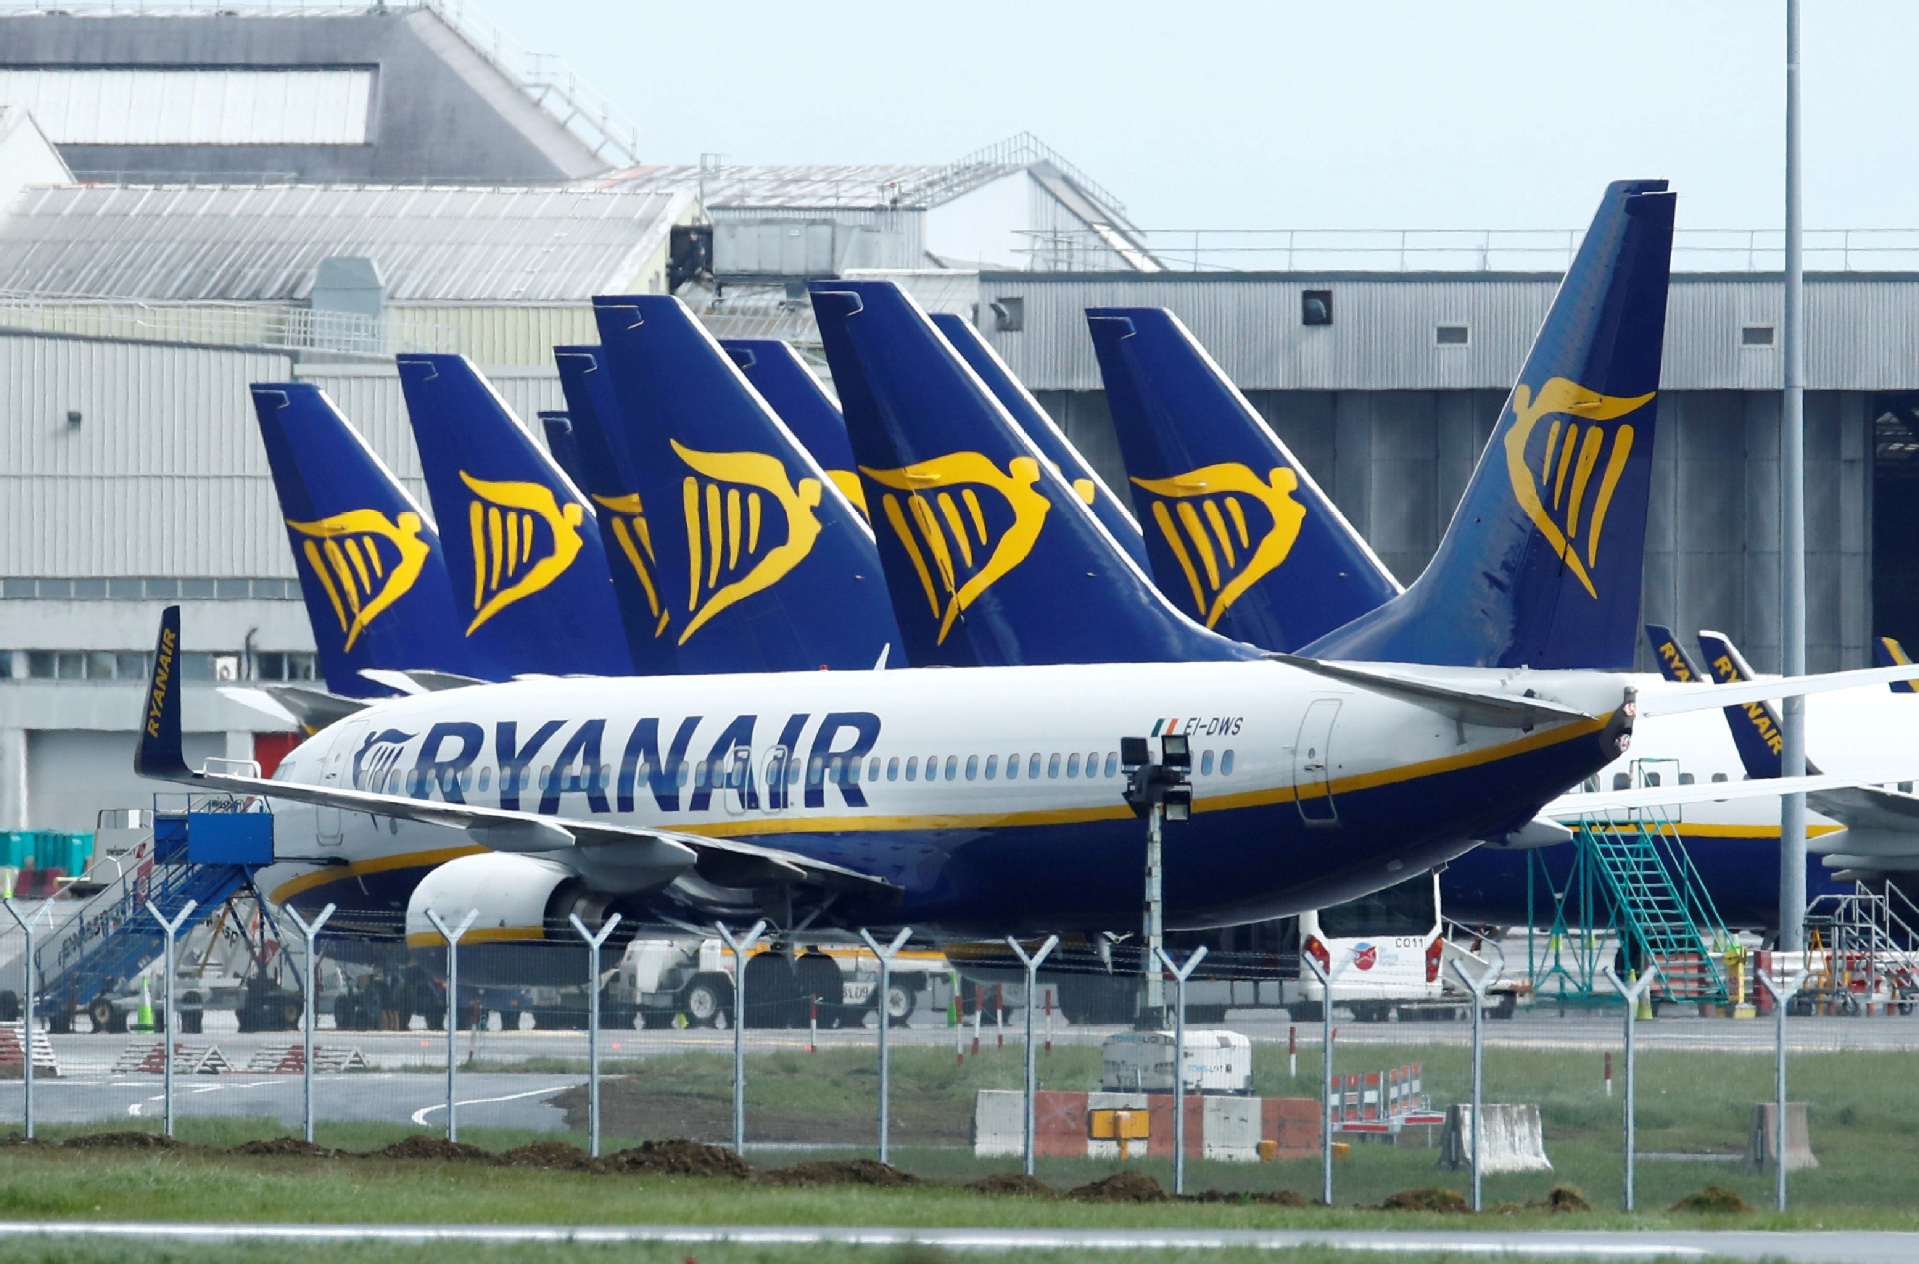 Ireland demands COVID-19 test results for int'l arrivals as cases near 170,000